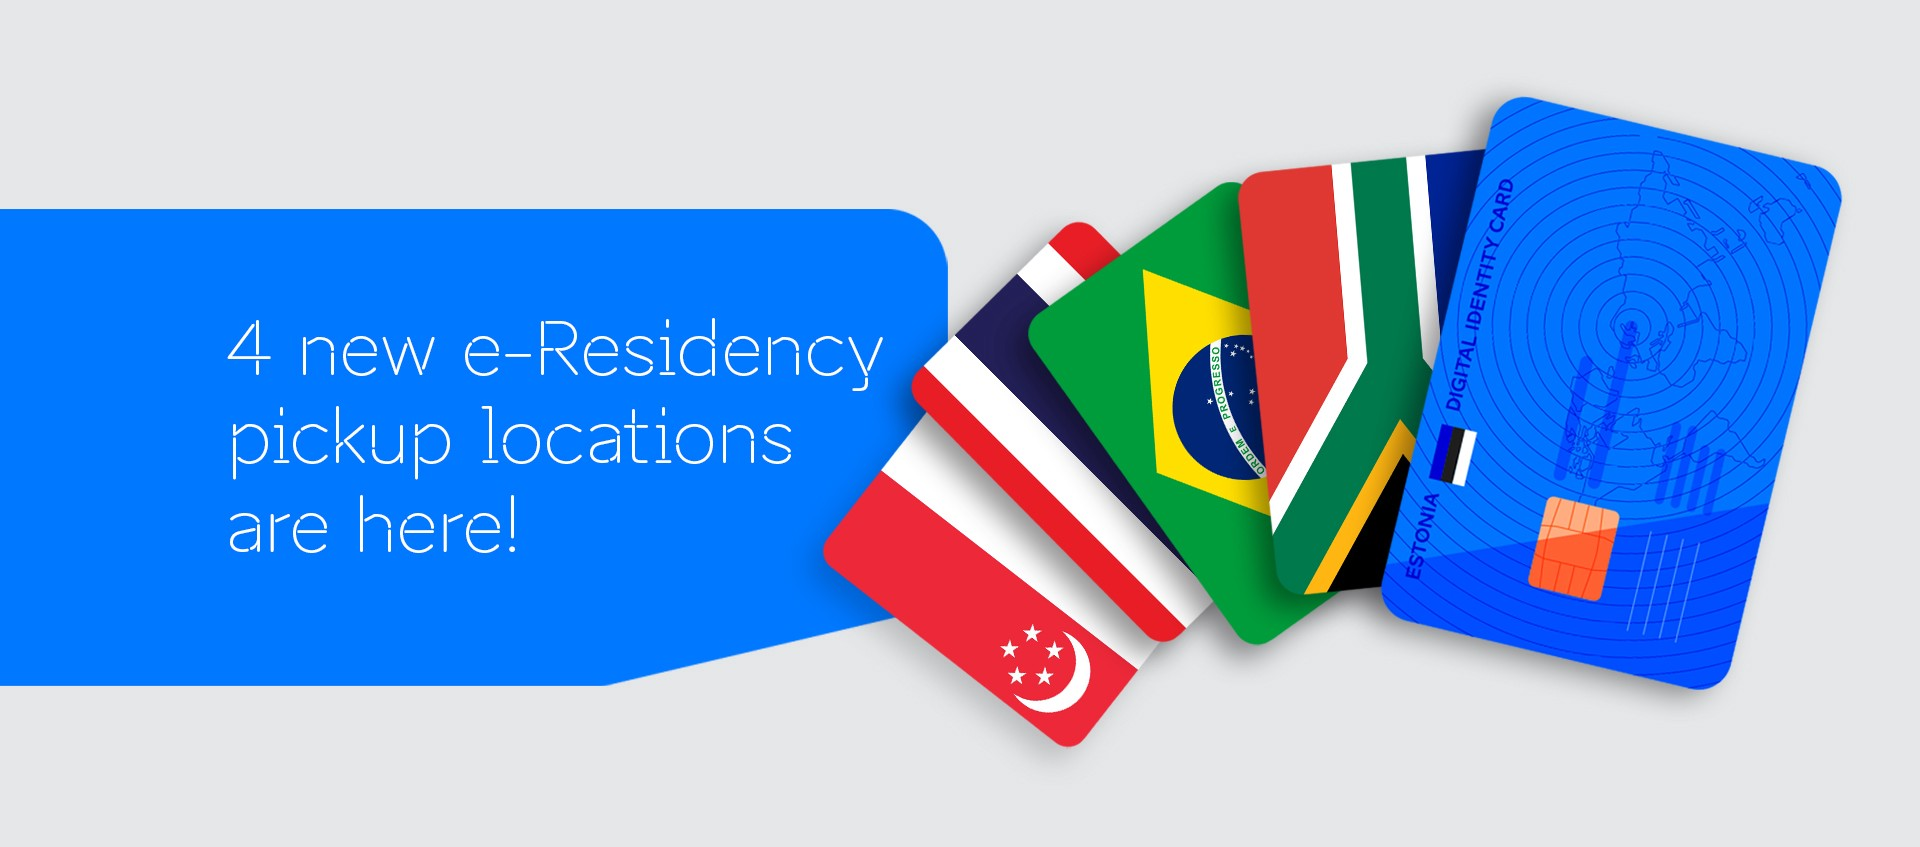 E-Residency is expanding!